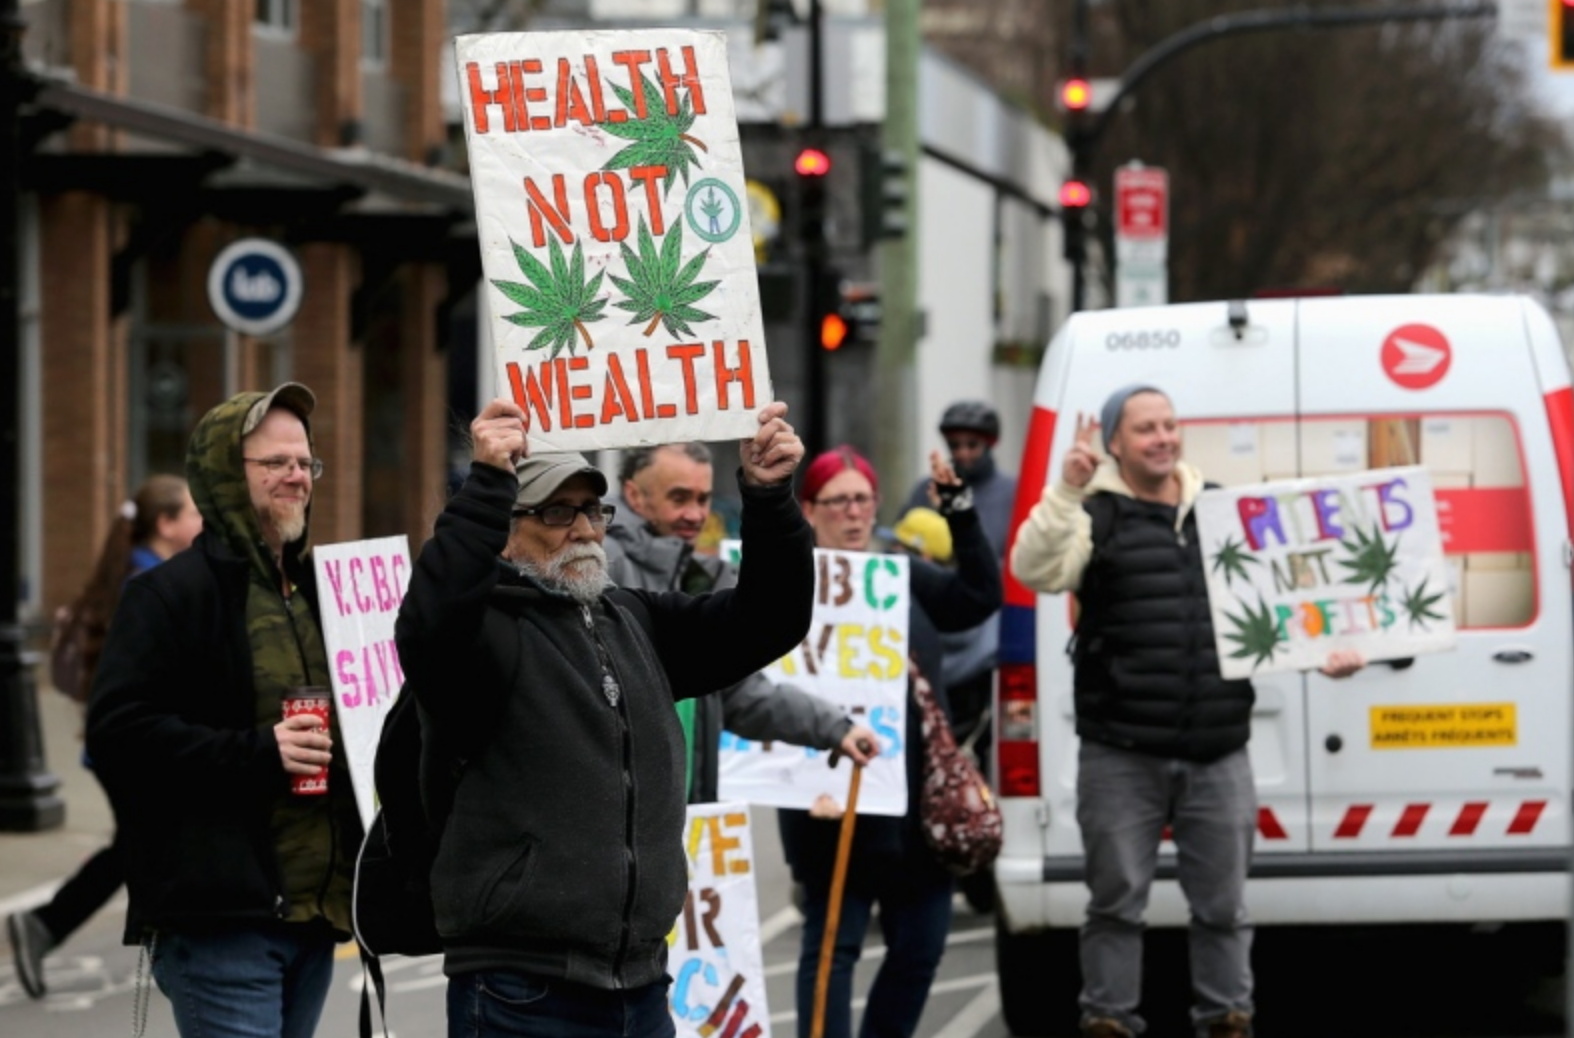 BC government again rejects dispensary's request for enforcement exemption, defers to Ottawa